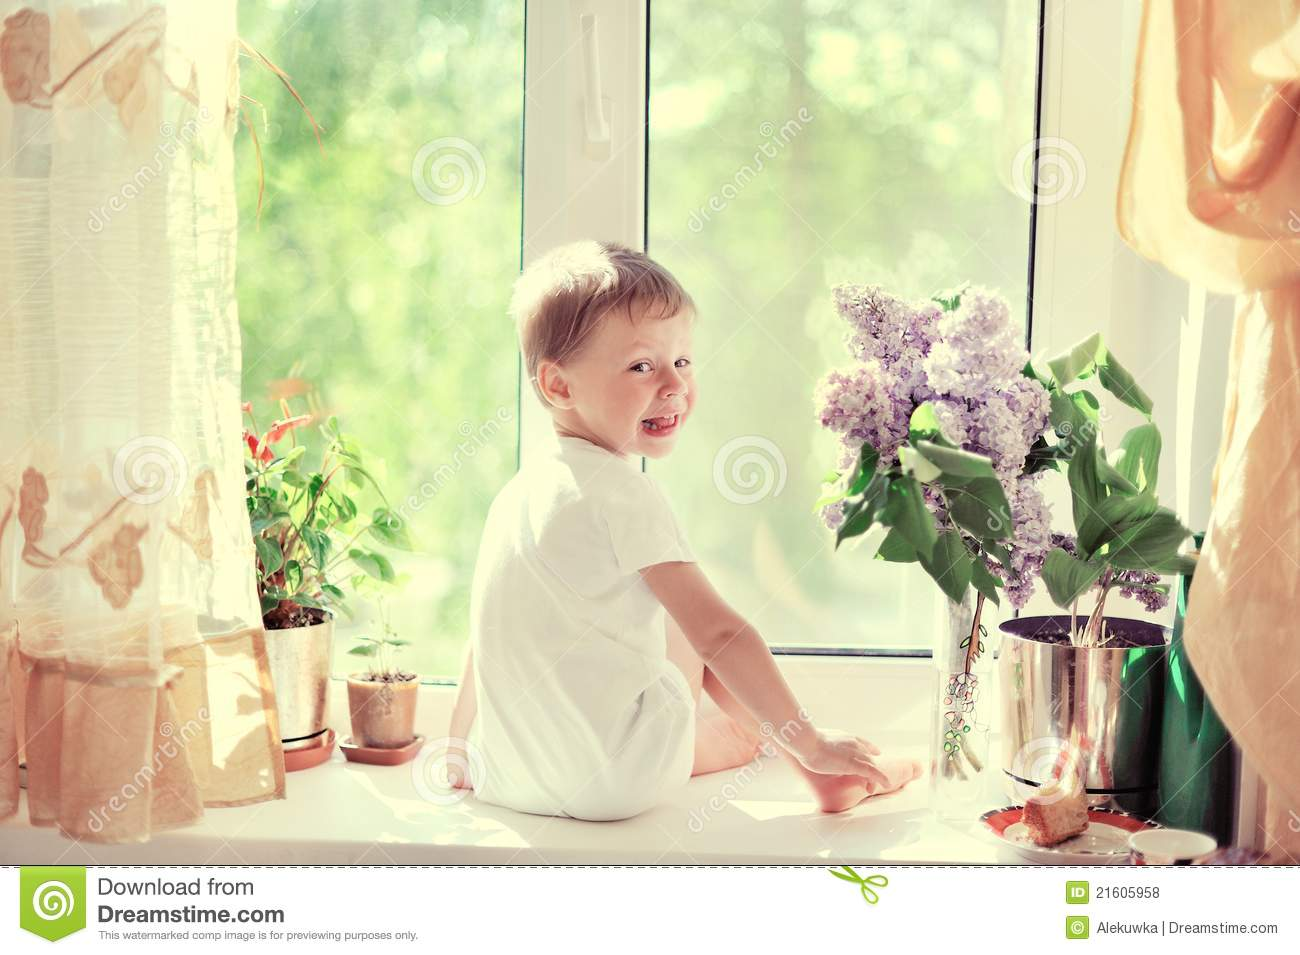 The Child At A Window Stock Photo Image Of Window